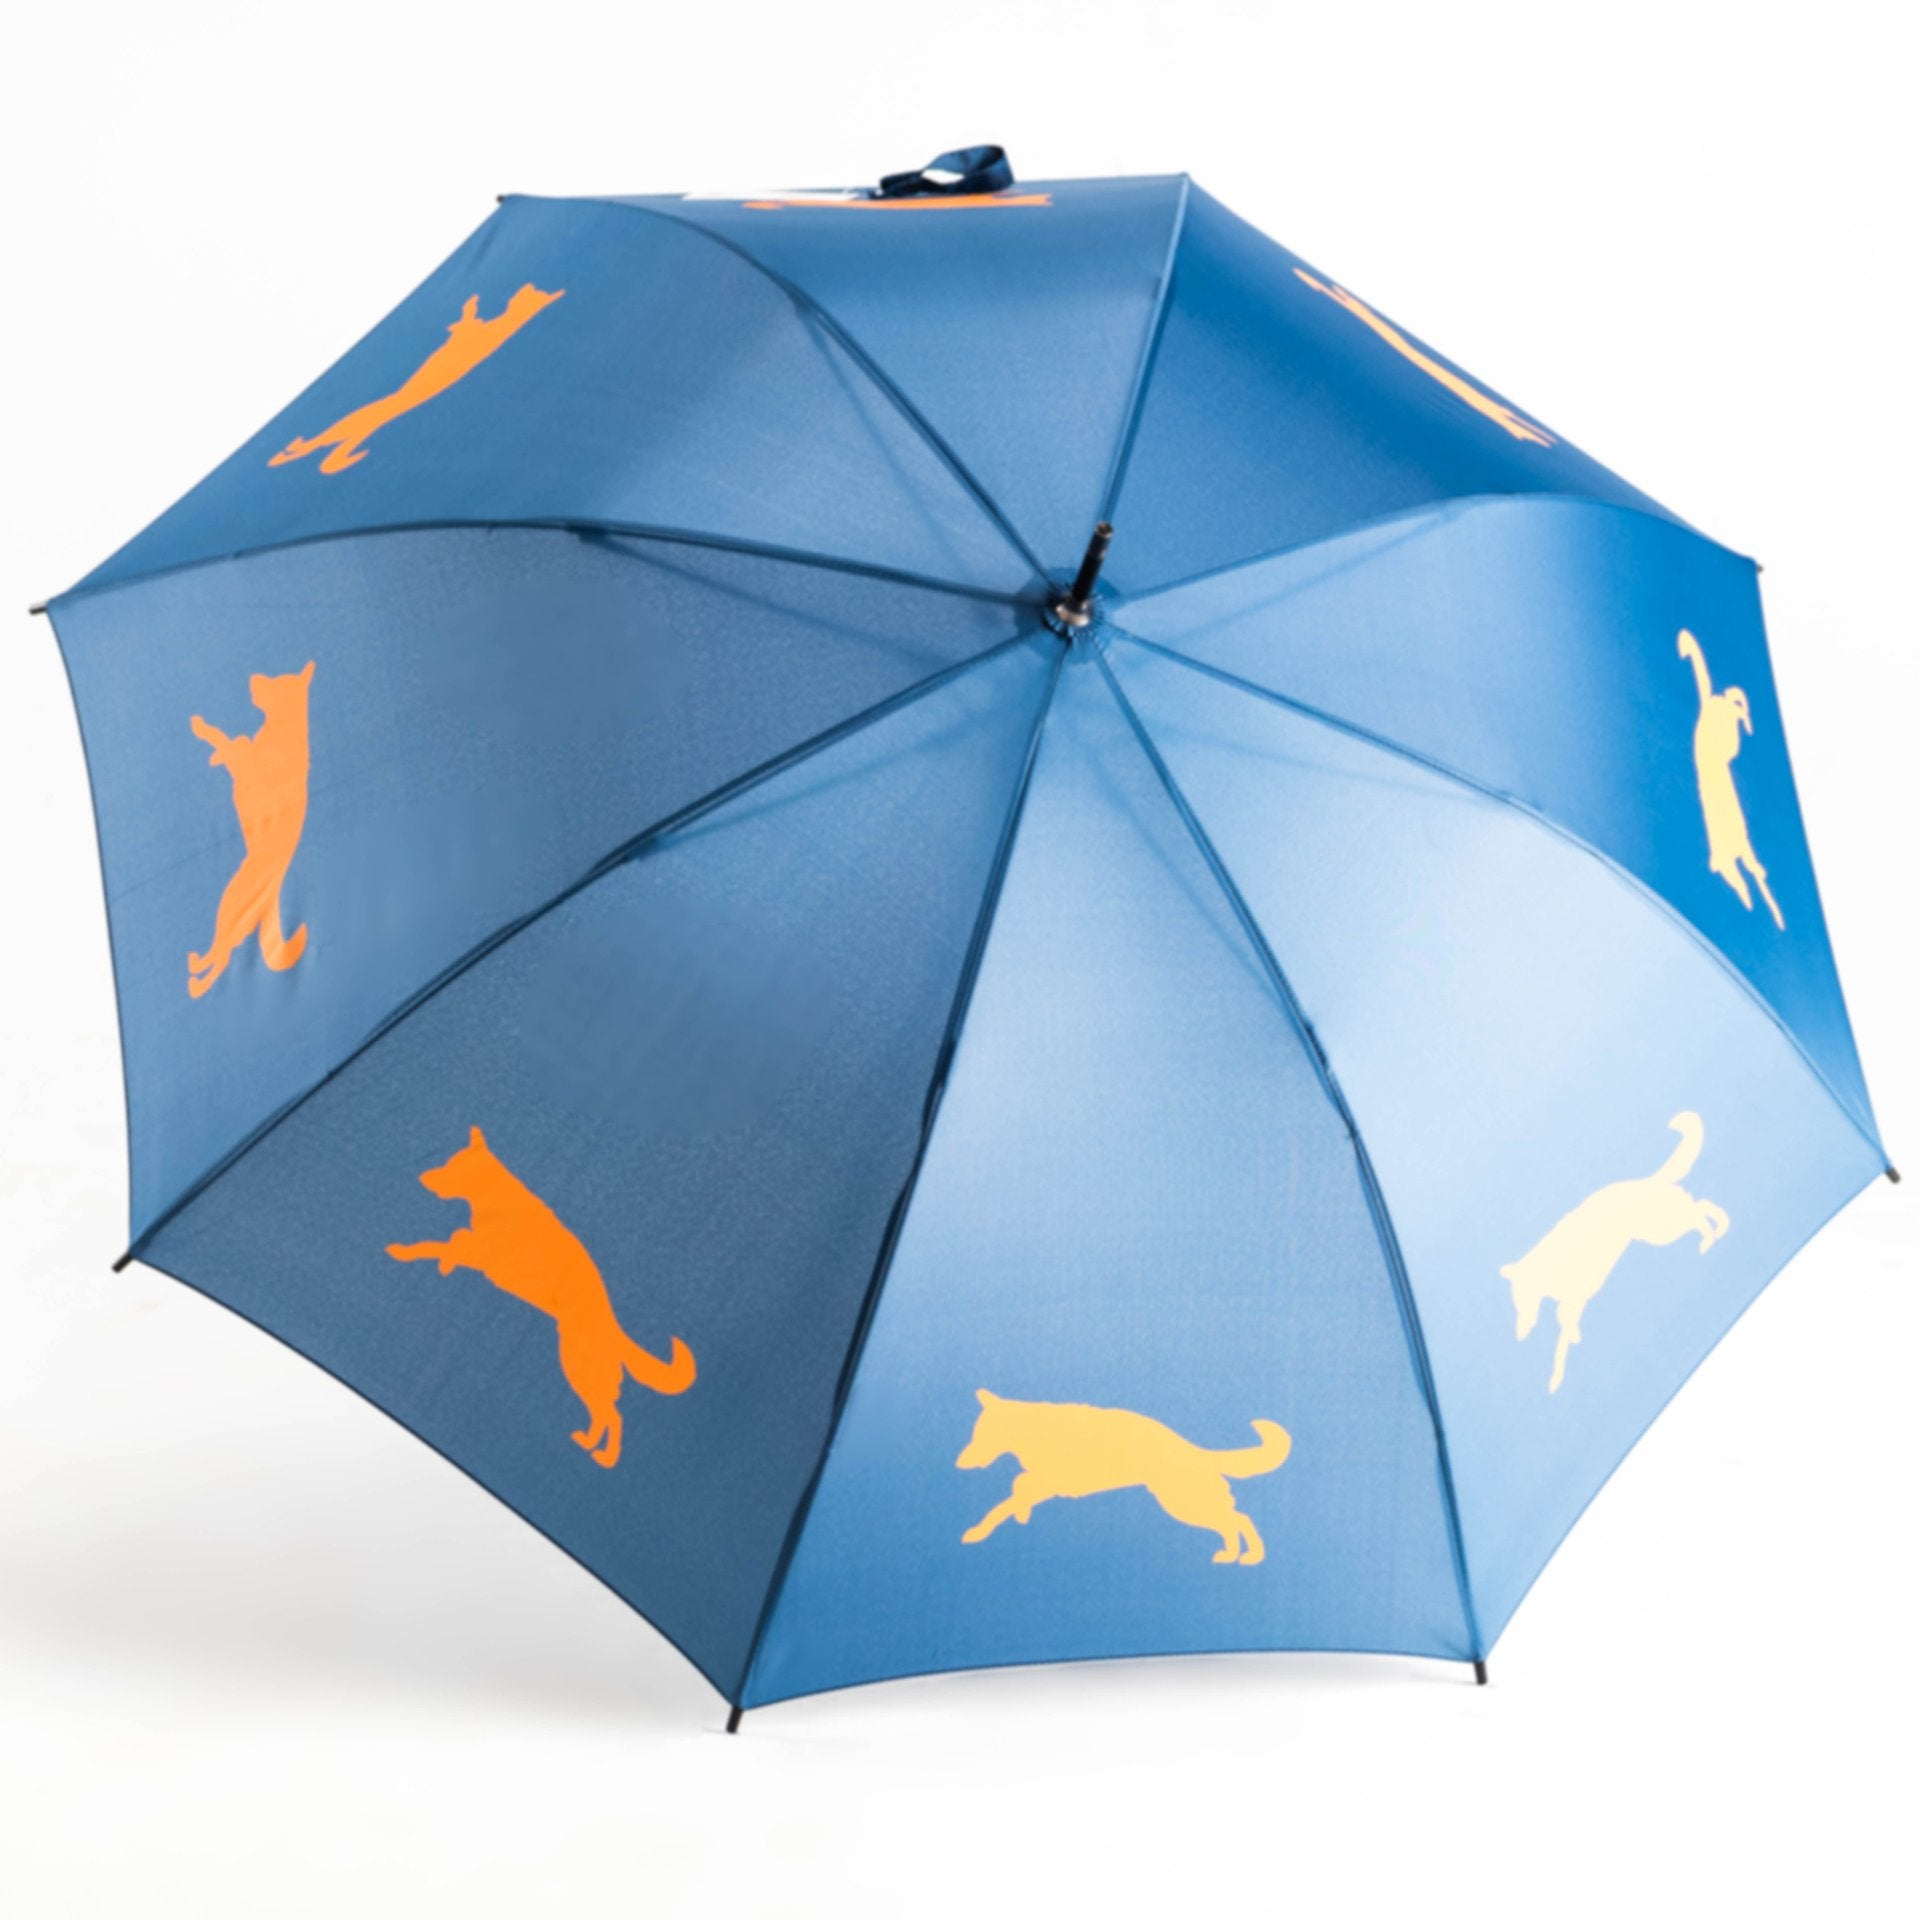 Boxer dog umbrella